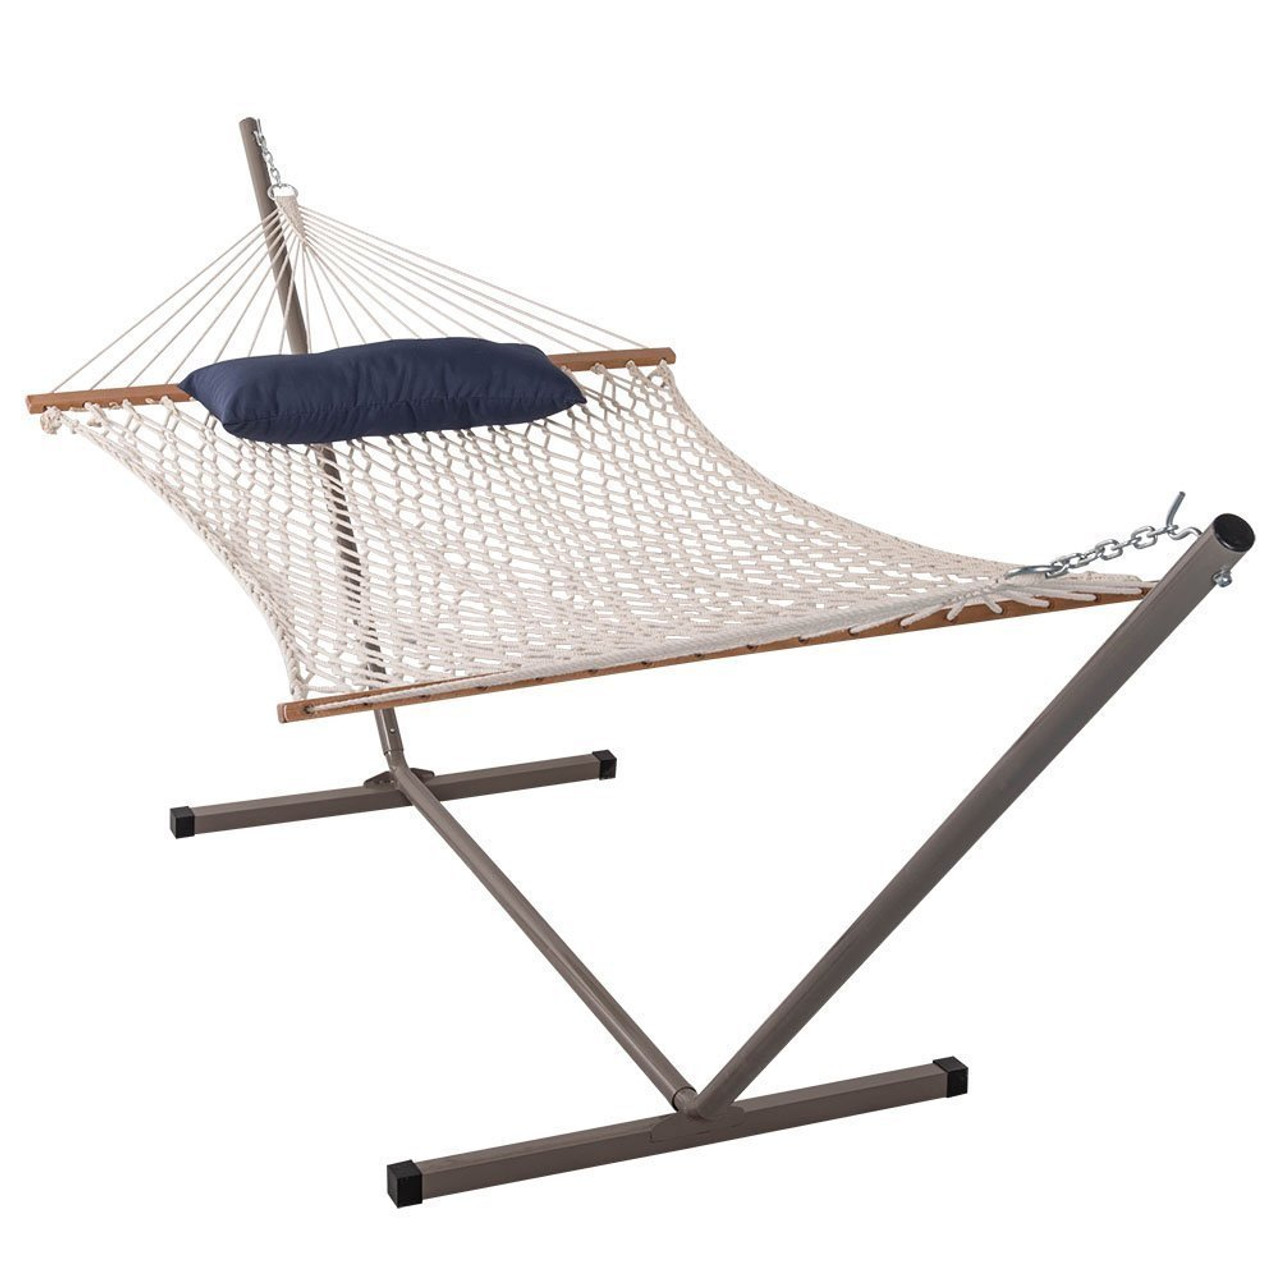 lazy daze hammocks cotton rope hammock with 12 feet steel stand and pillow  bo cotton rope hammock with 12 feet steel stand and pillow  bo  rh   sundaleoutdoor